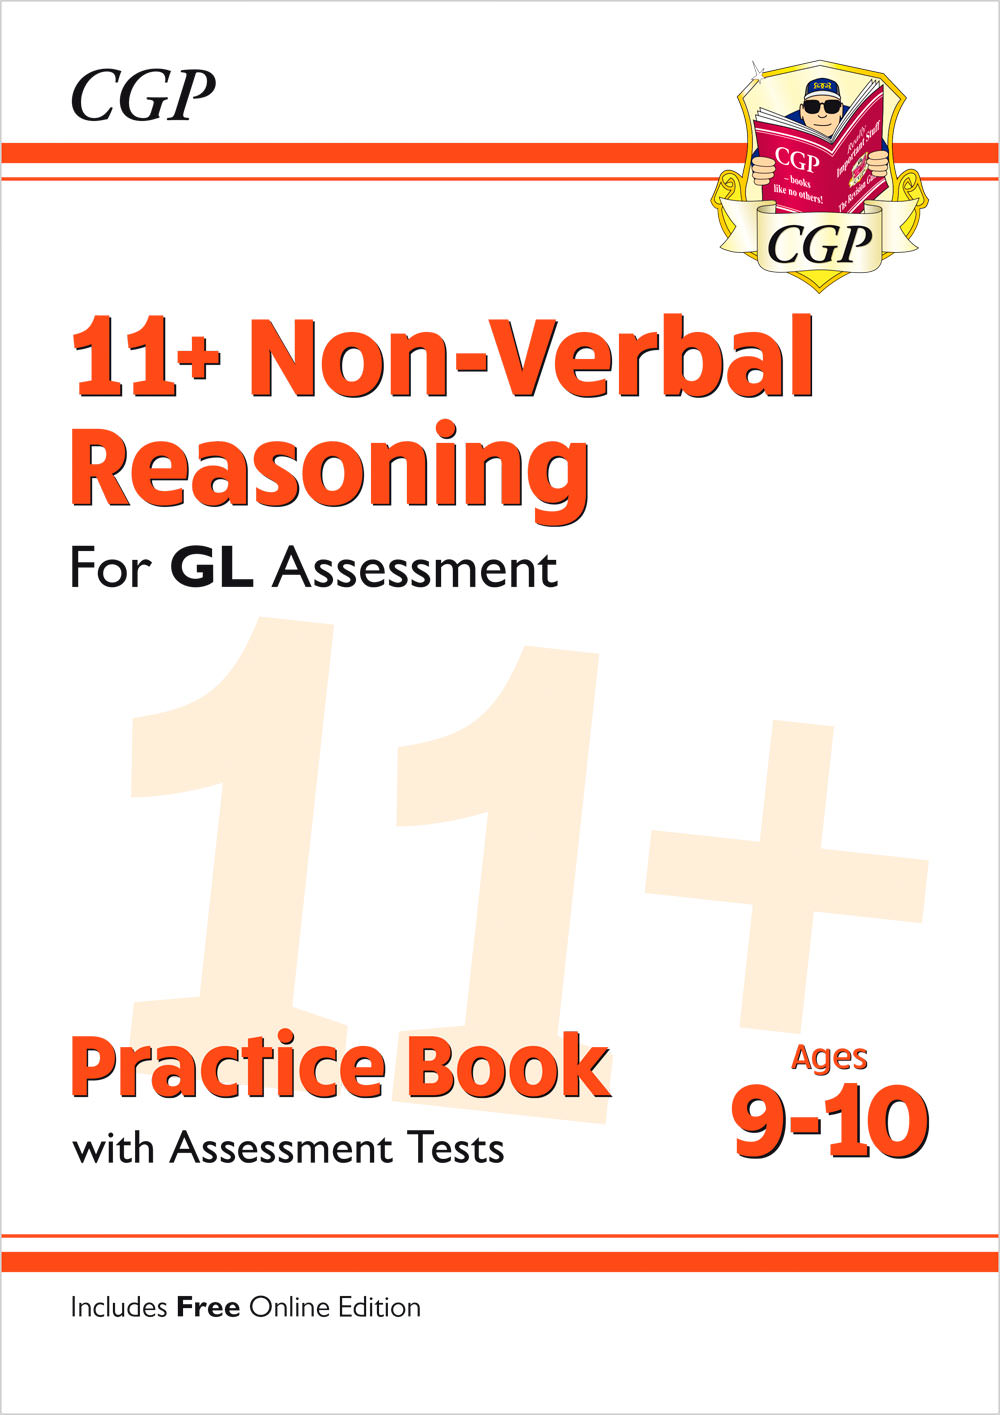 N5QE2 - New 11+ GL Non-Verbal Reasoning Practice Book & Assessment Tests - Ages 9-10 (with Online Ed